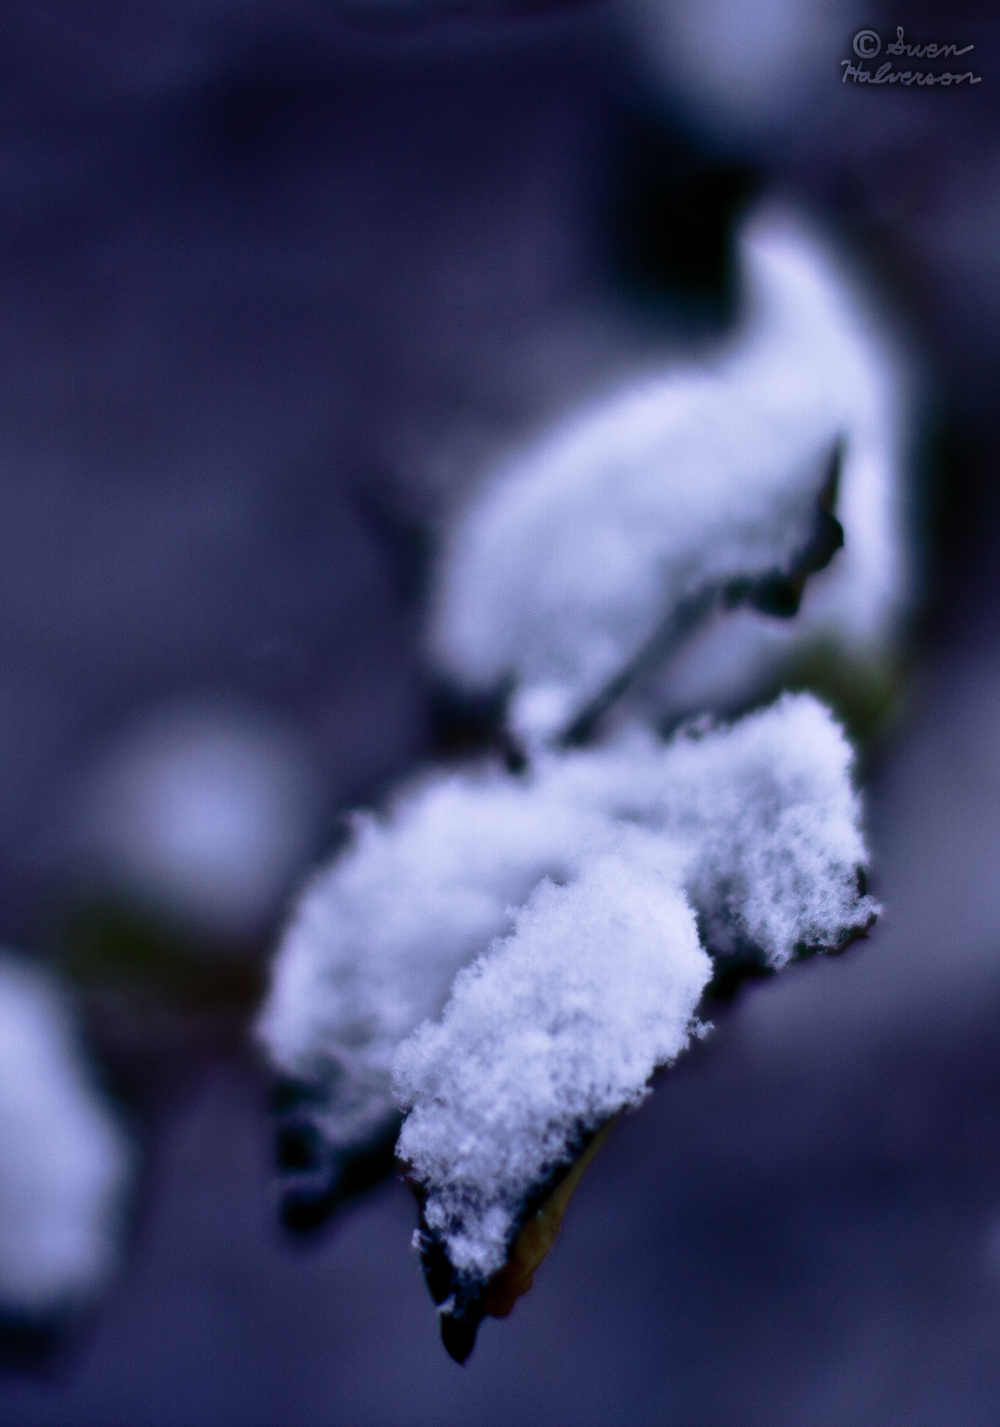 Theme: Cold  <br>Title: Snow Leaf